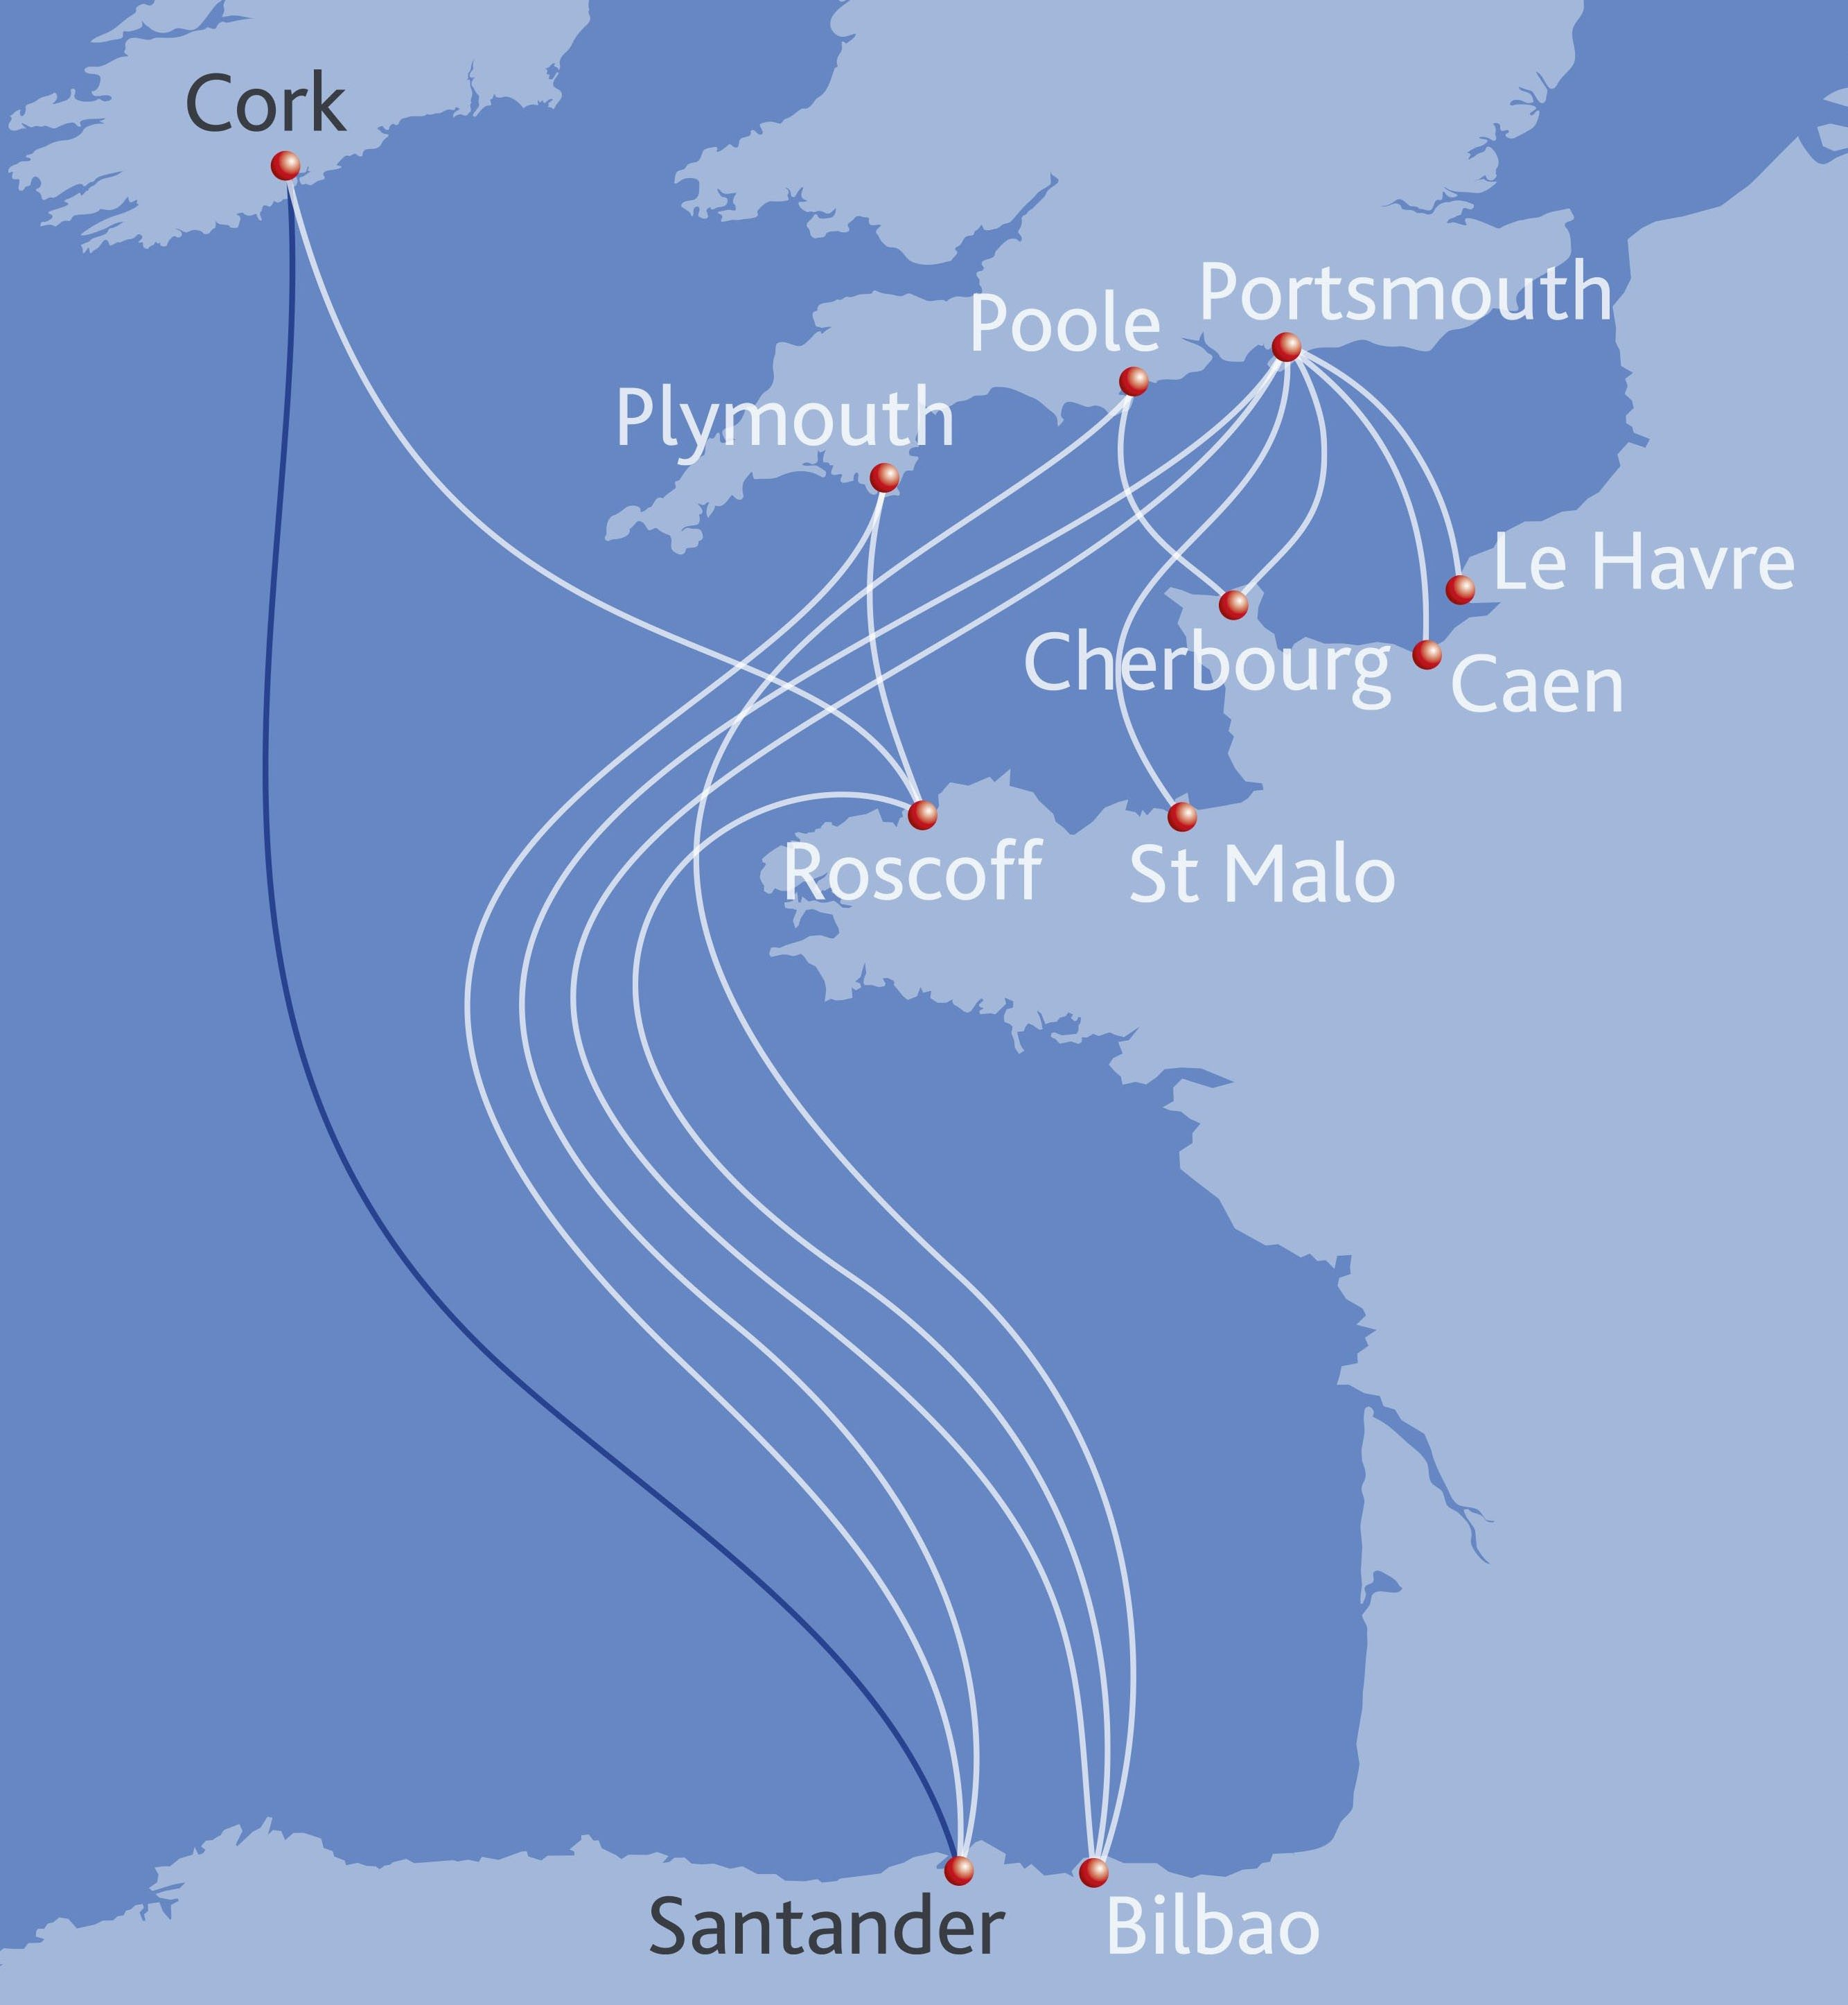 Lignes maritimes Brittany Ferries